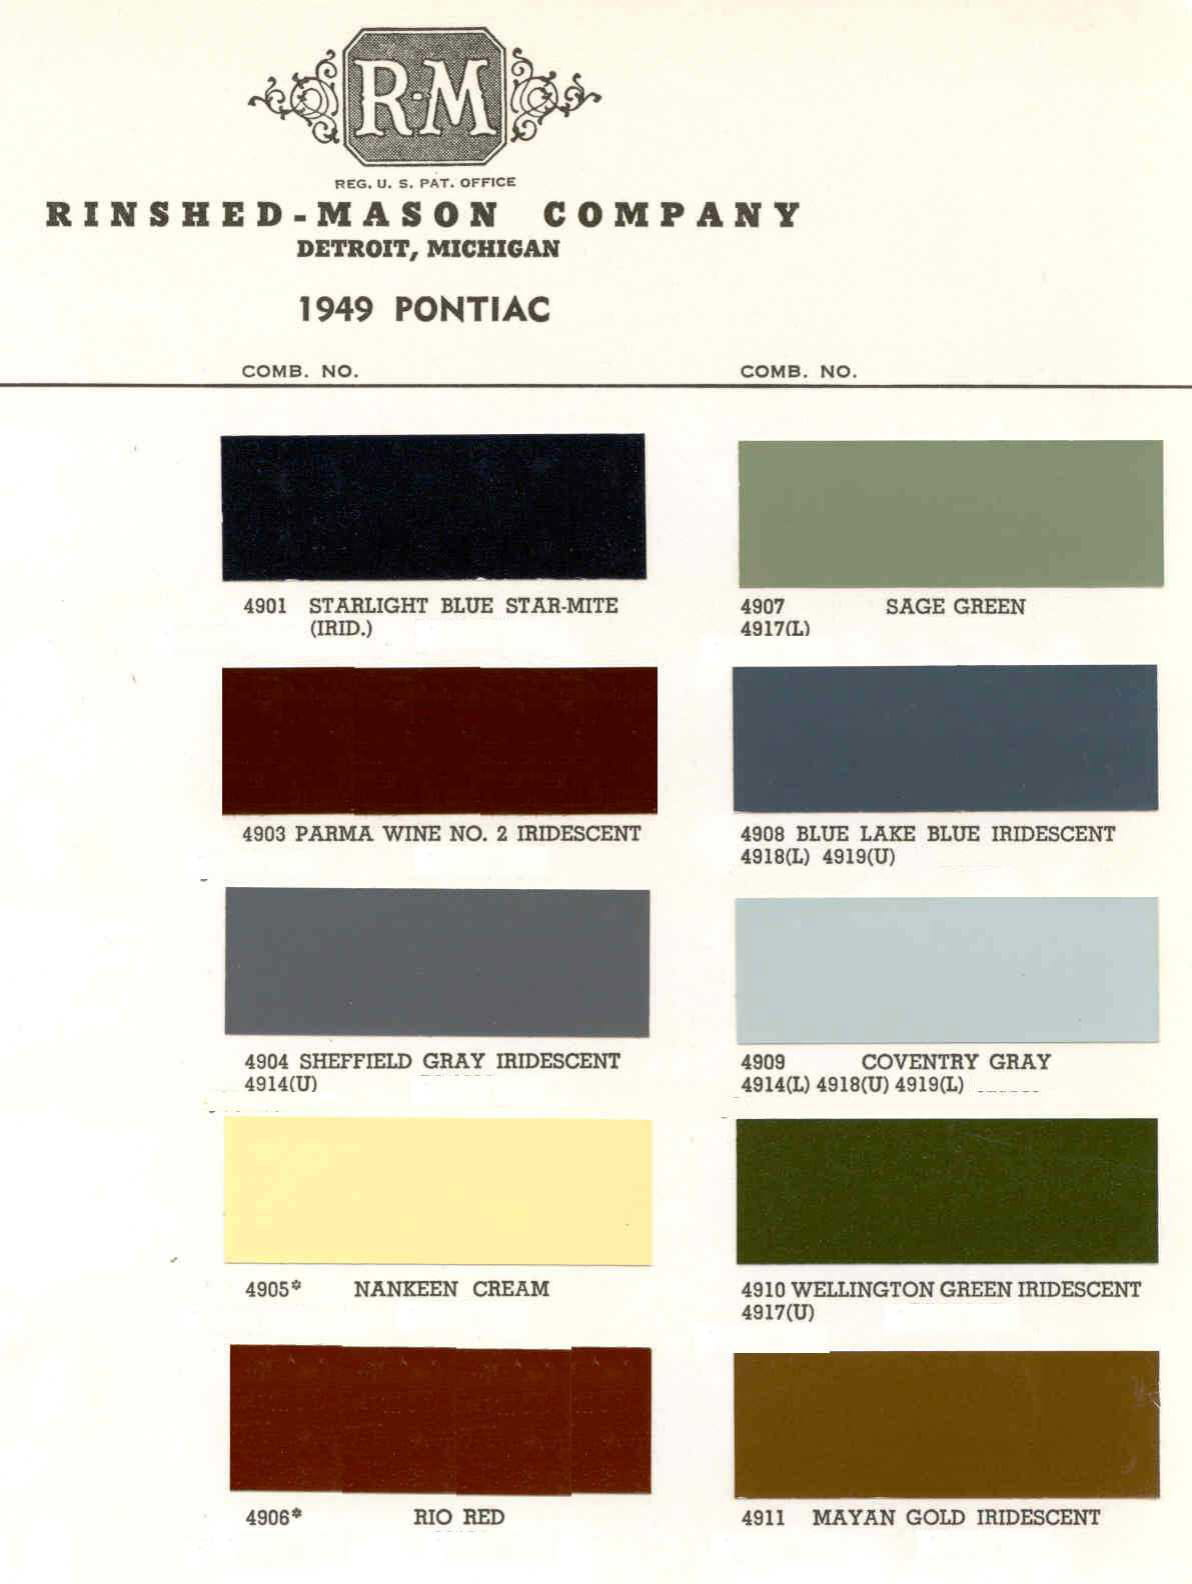 Color Code and Paint Color Chart for Pontiac for 1949